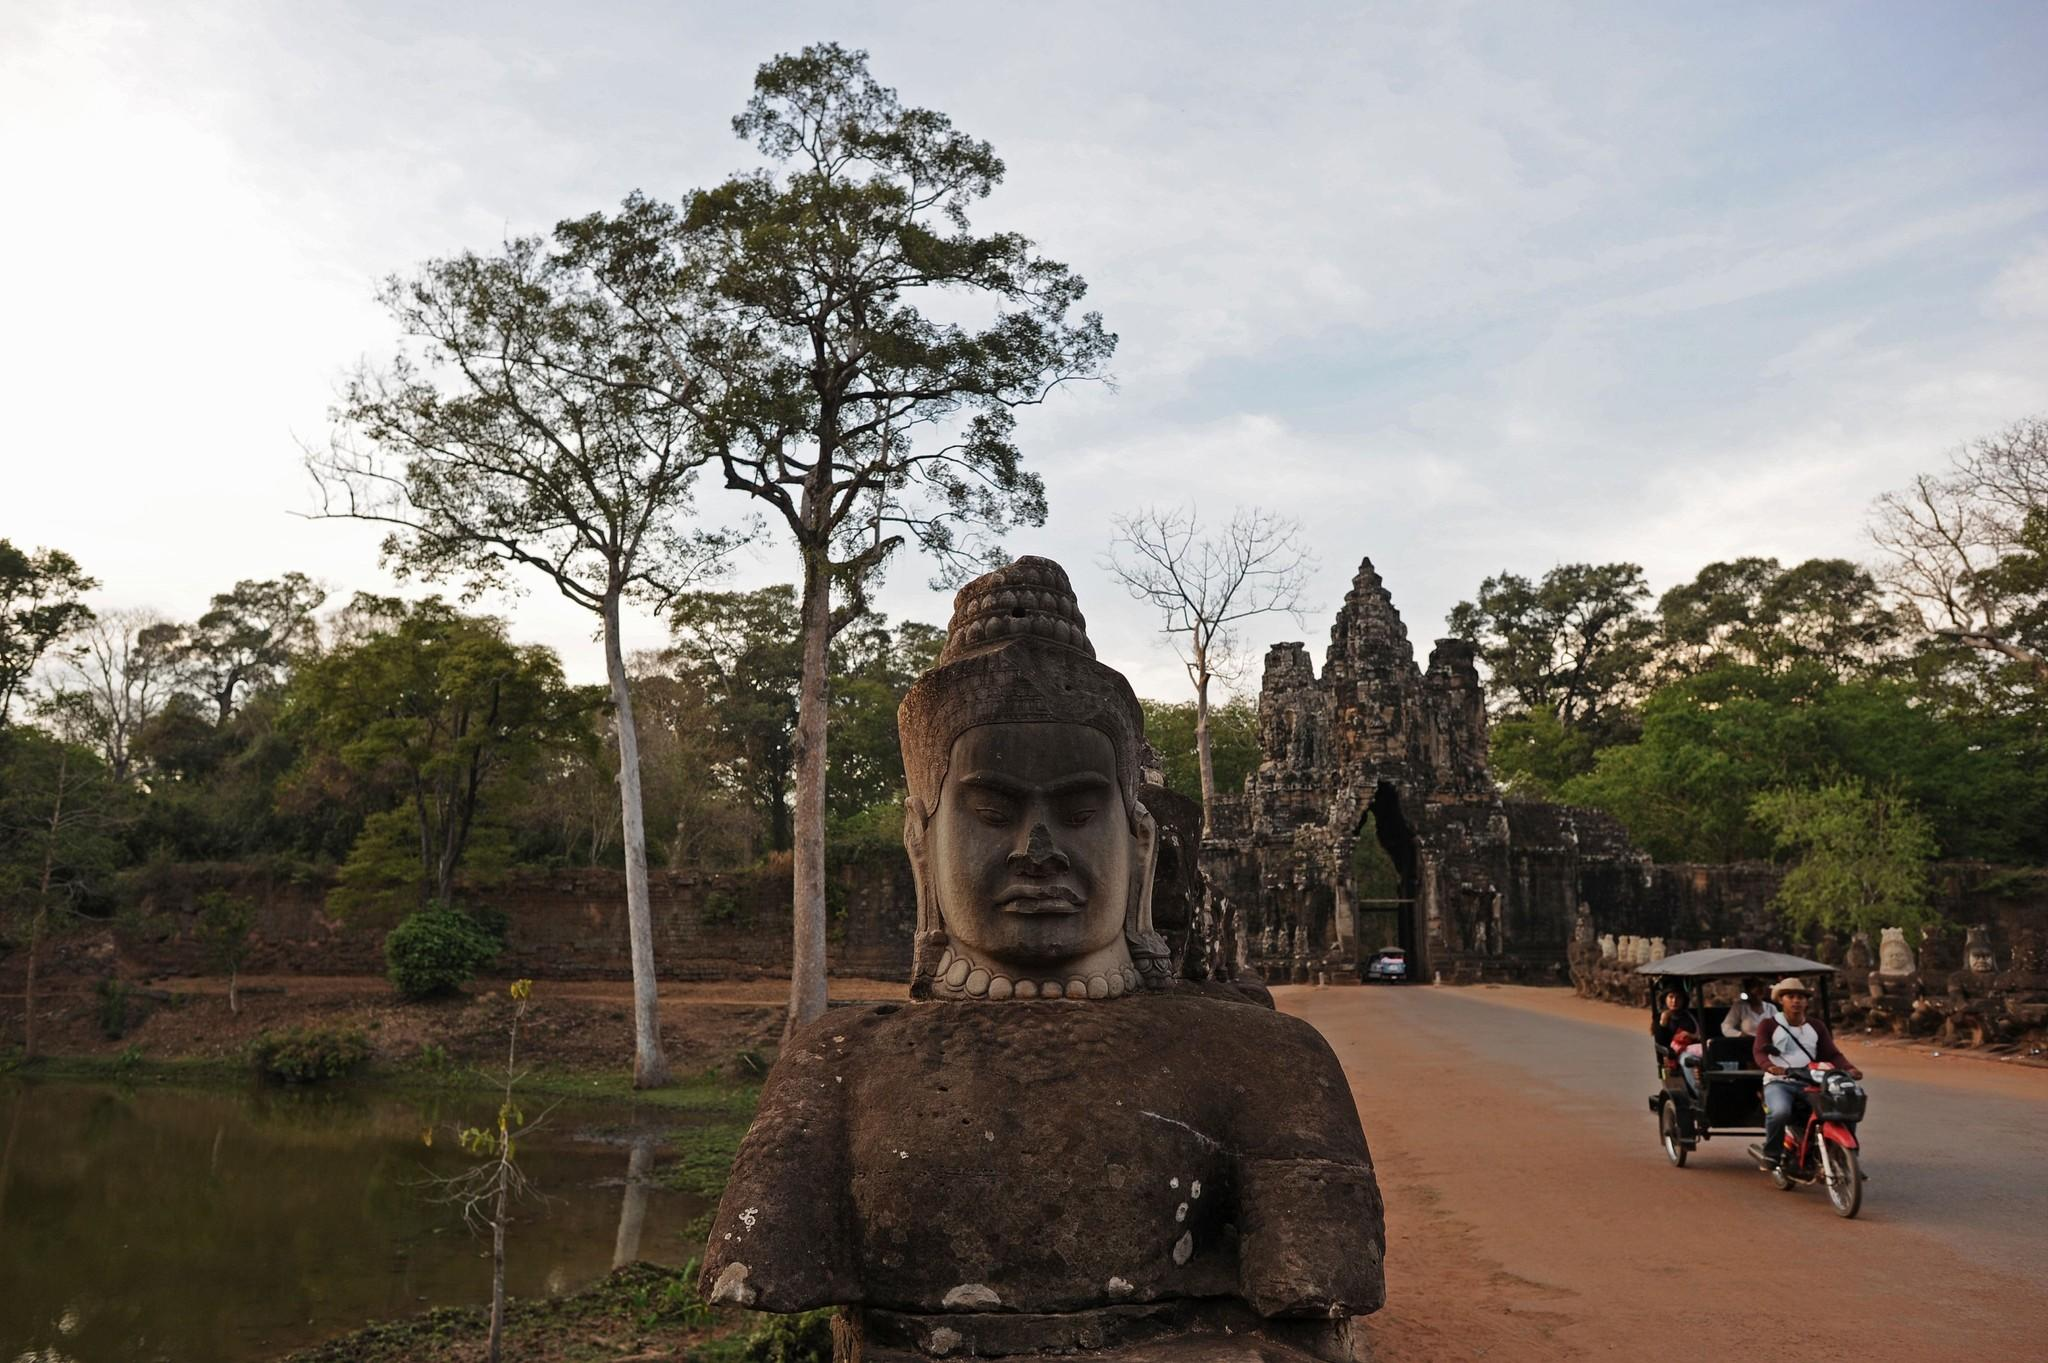 A tuk-tuk bicycle cab takes tourists around Cambodia's ancient city of Angkor Thom, part of the Angkor architectural complex that Google Maps has digitally mapped for the first time and made available online through its World Wonders Project.